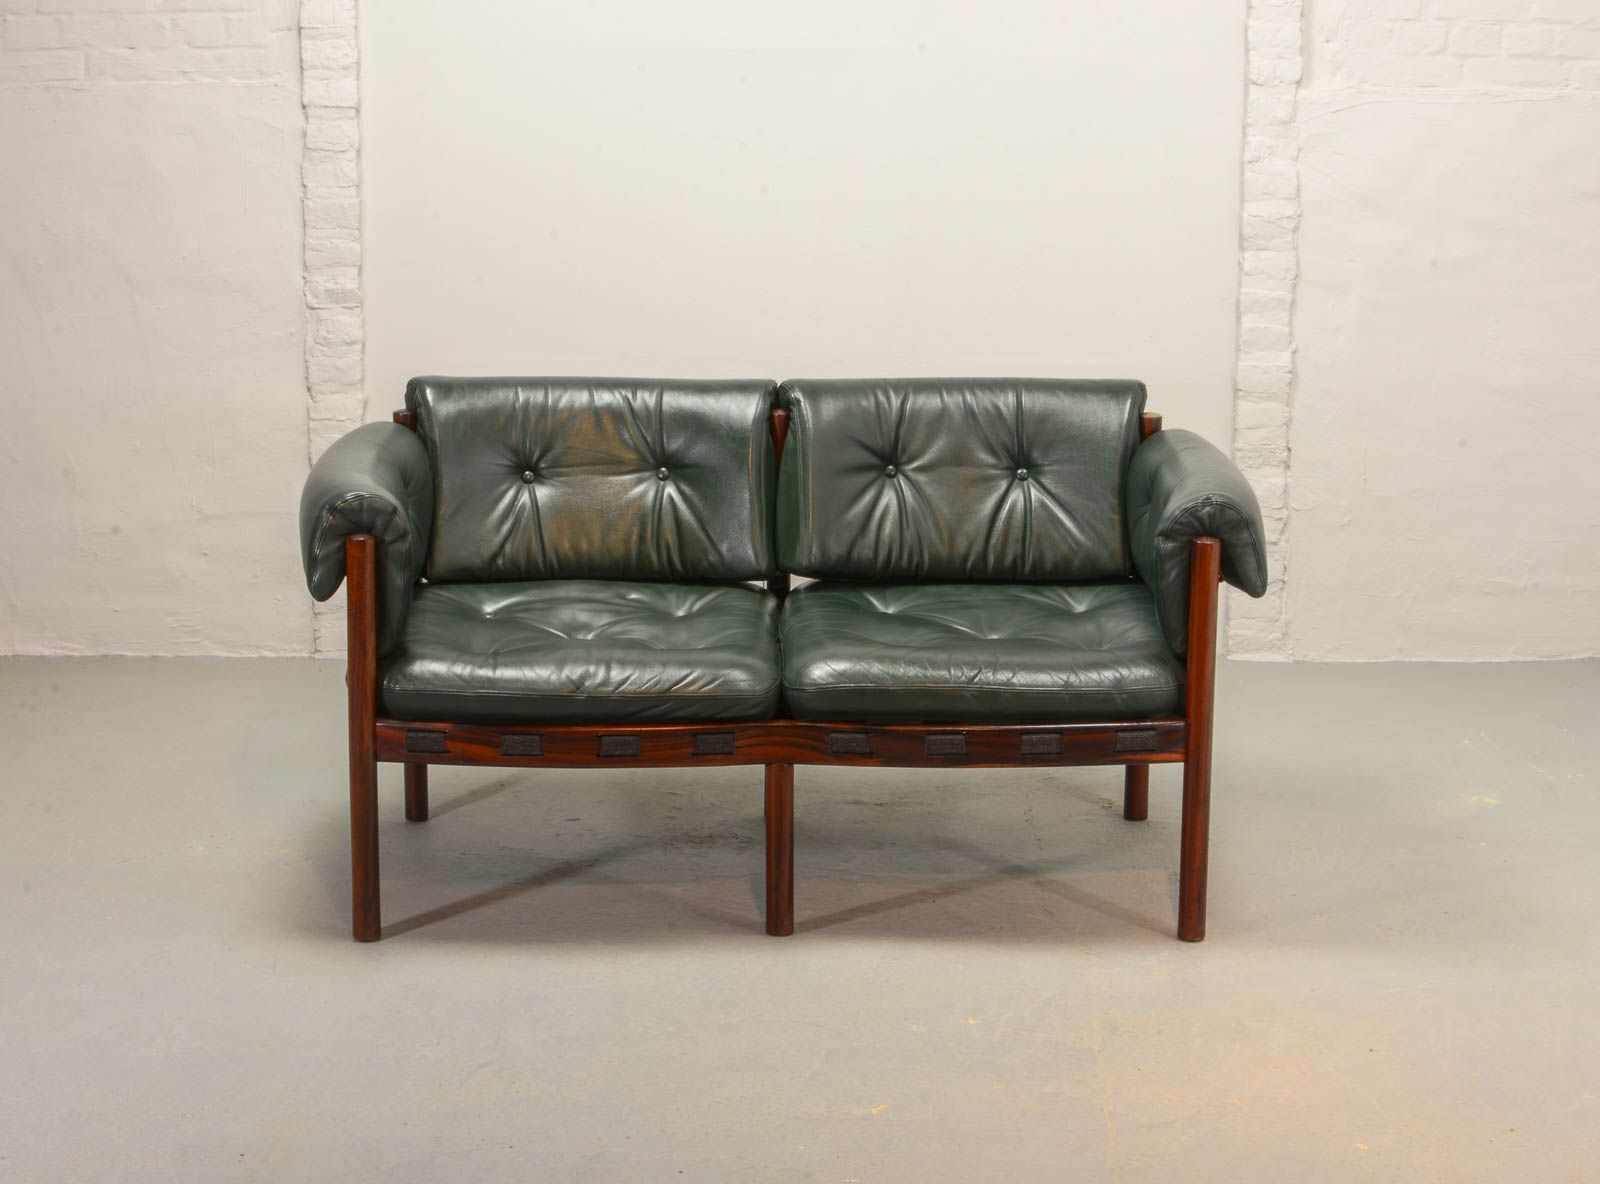 2 Seater Sofa By Arne Norell For Coja 1960s